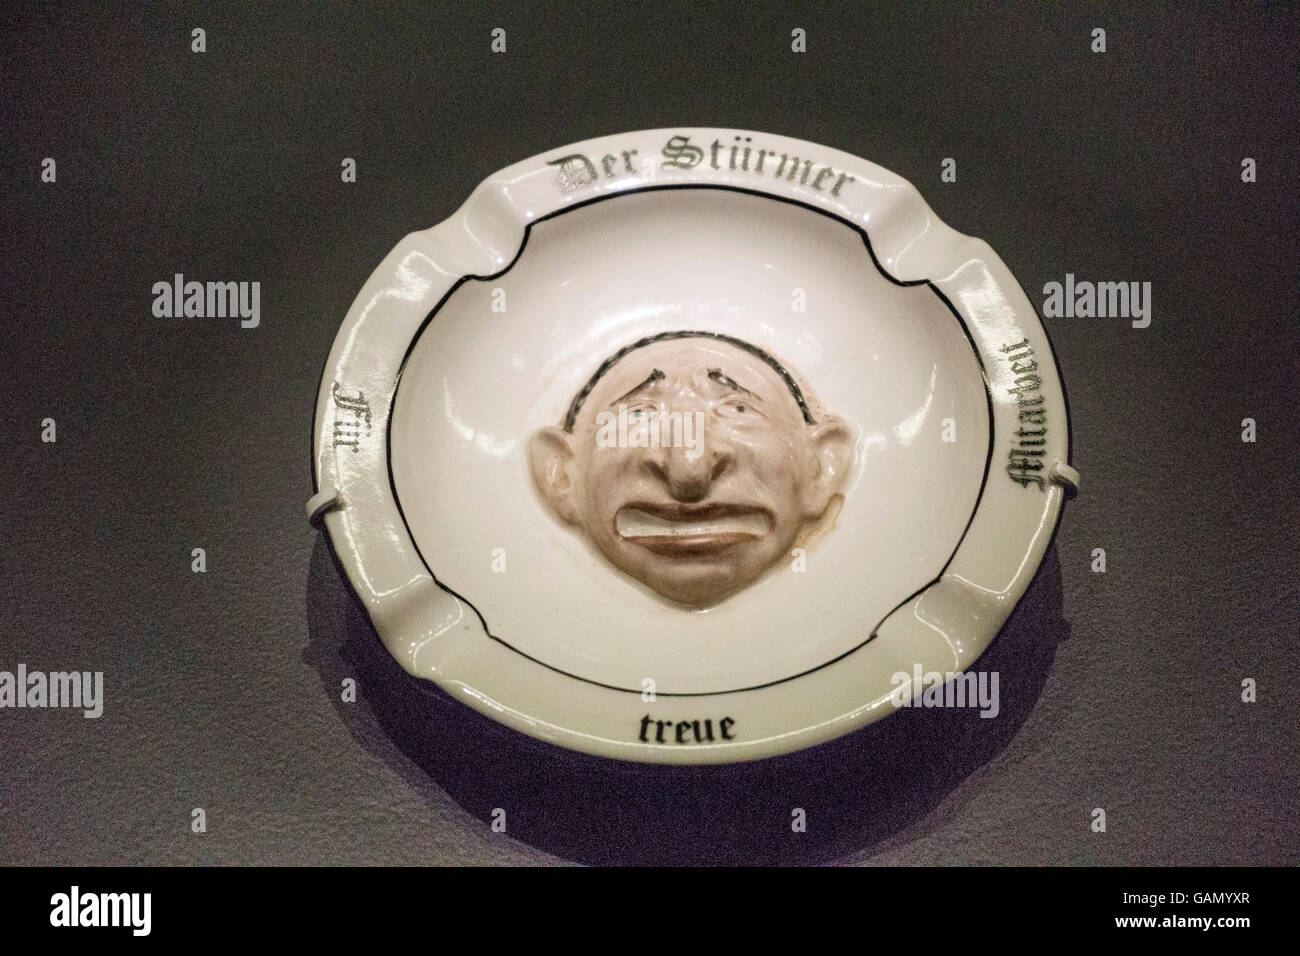 anti Semitic ash tray with worried face of Jewish male caricatured in low relief displayed among artifacts of Nazi - Stock Image